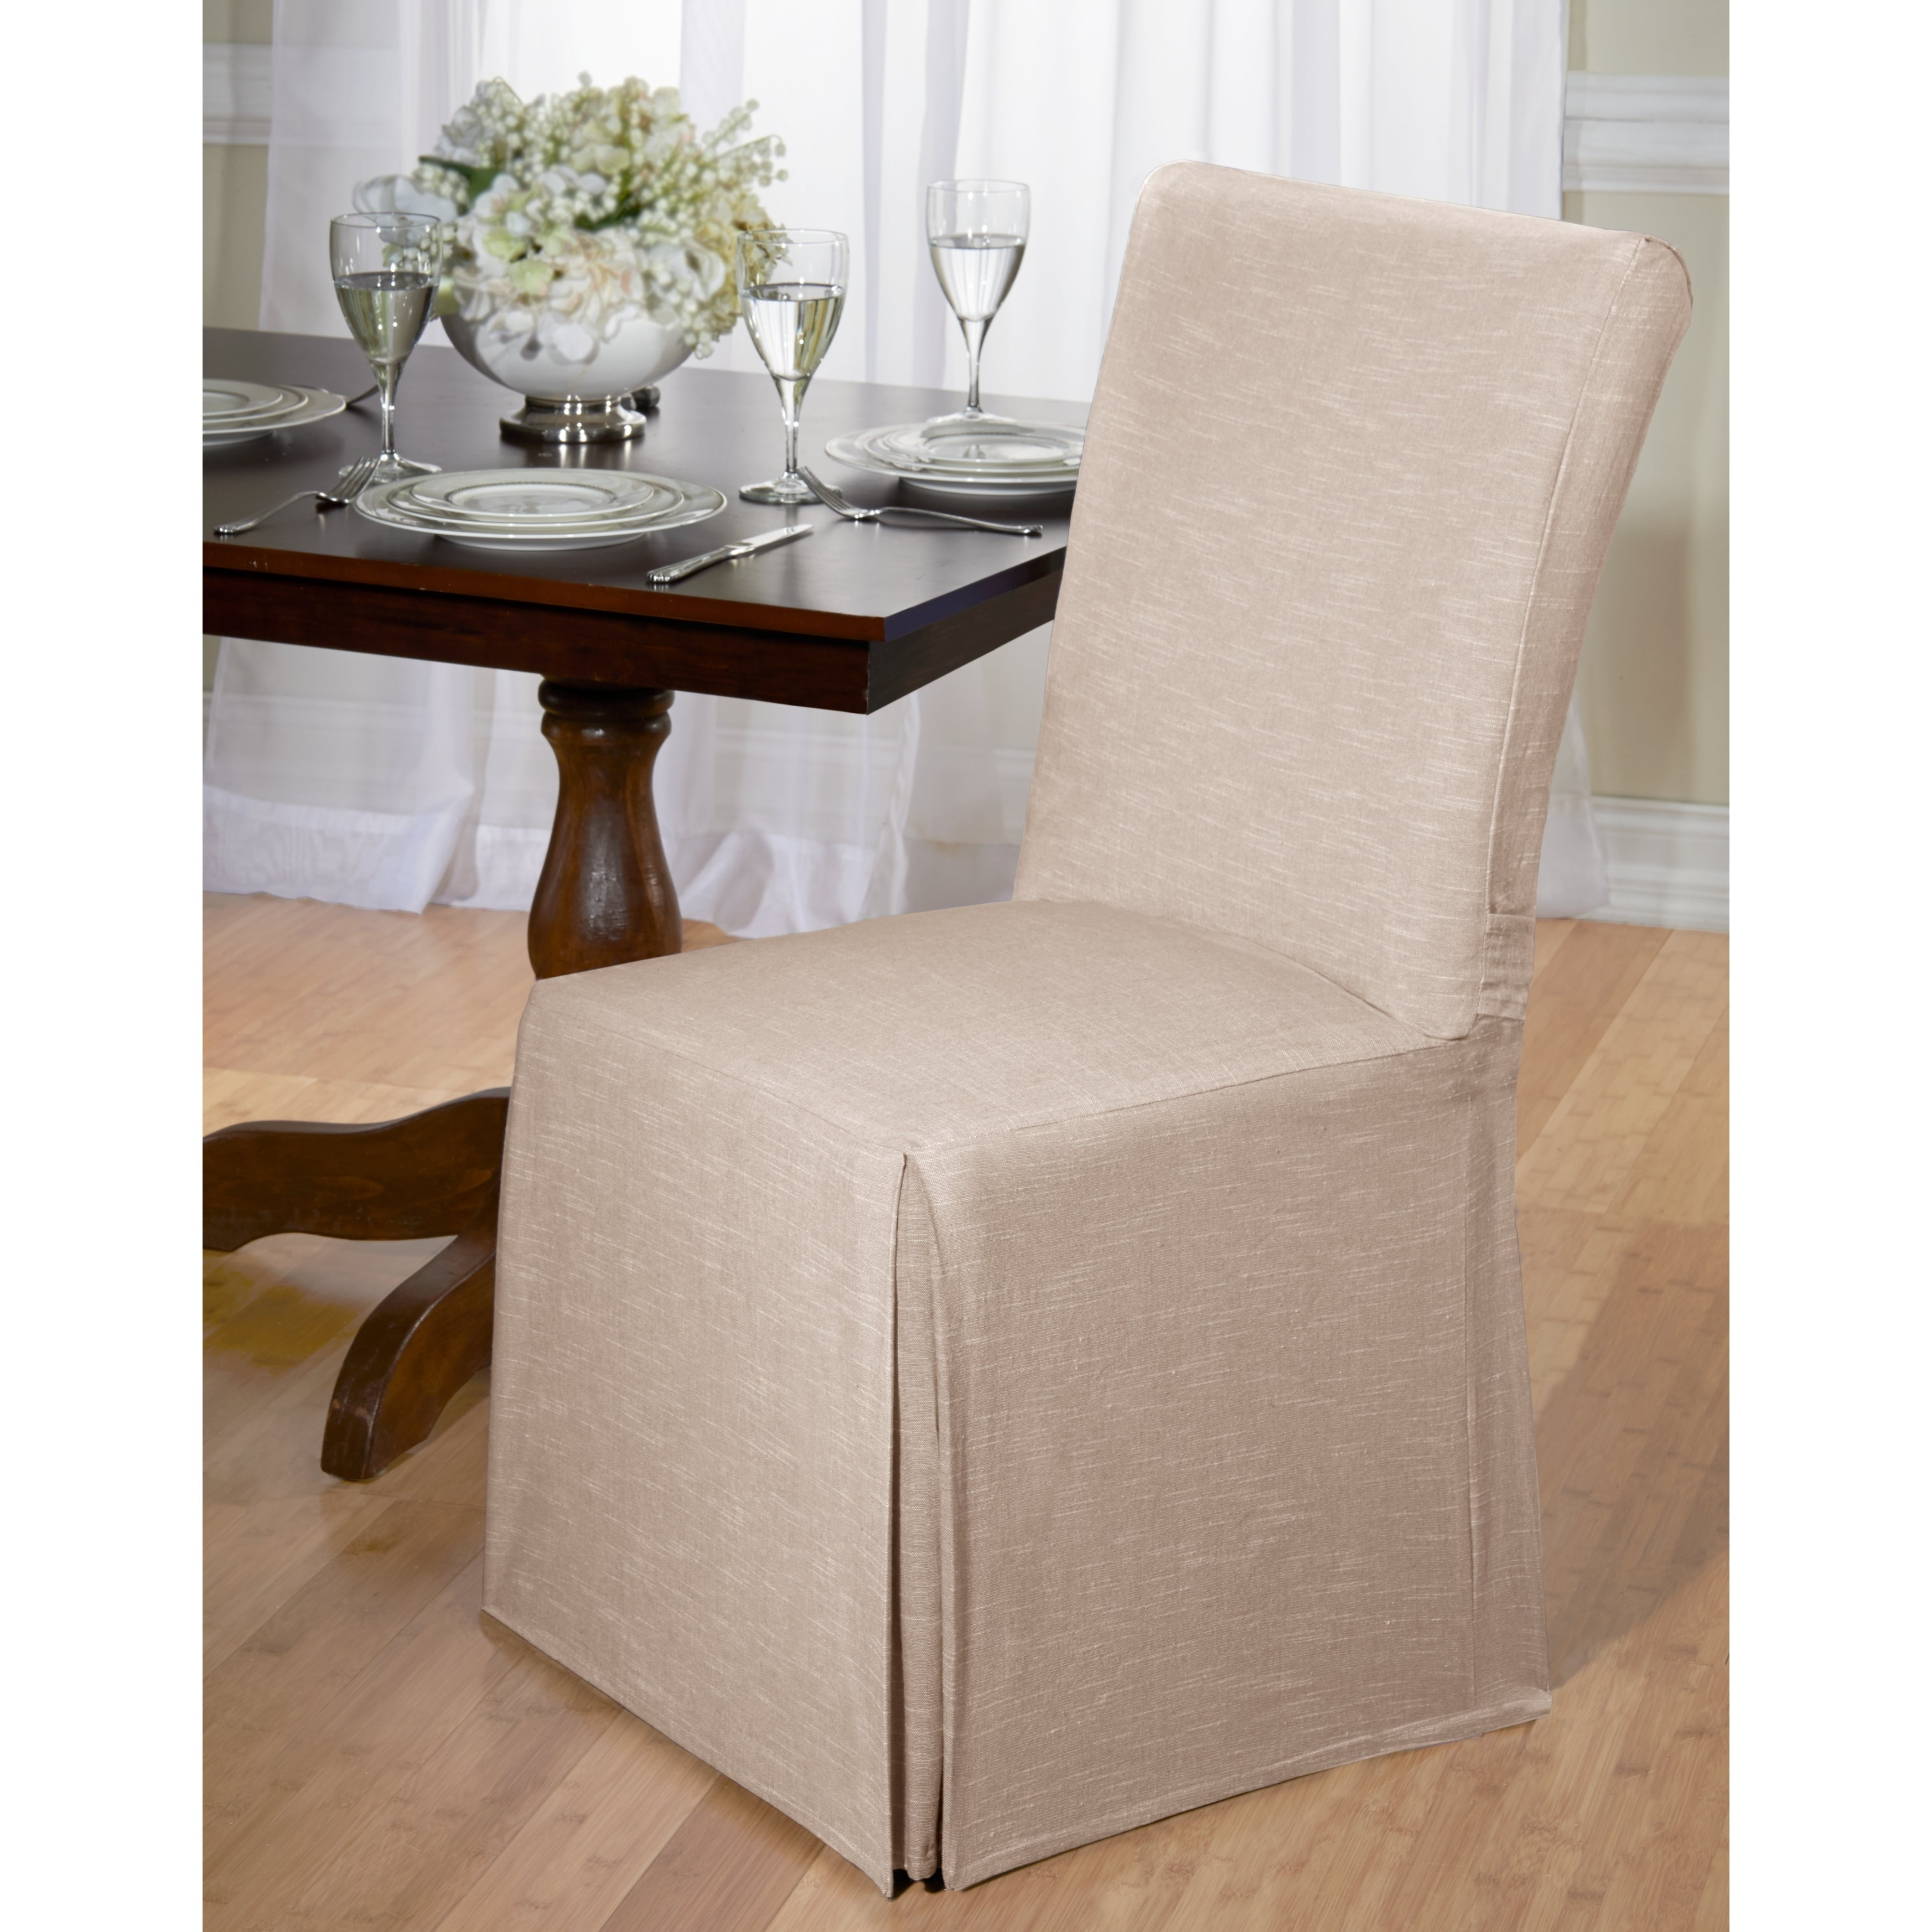 Cotton Chair Covers Slipcovers Online At